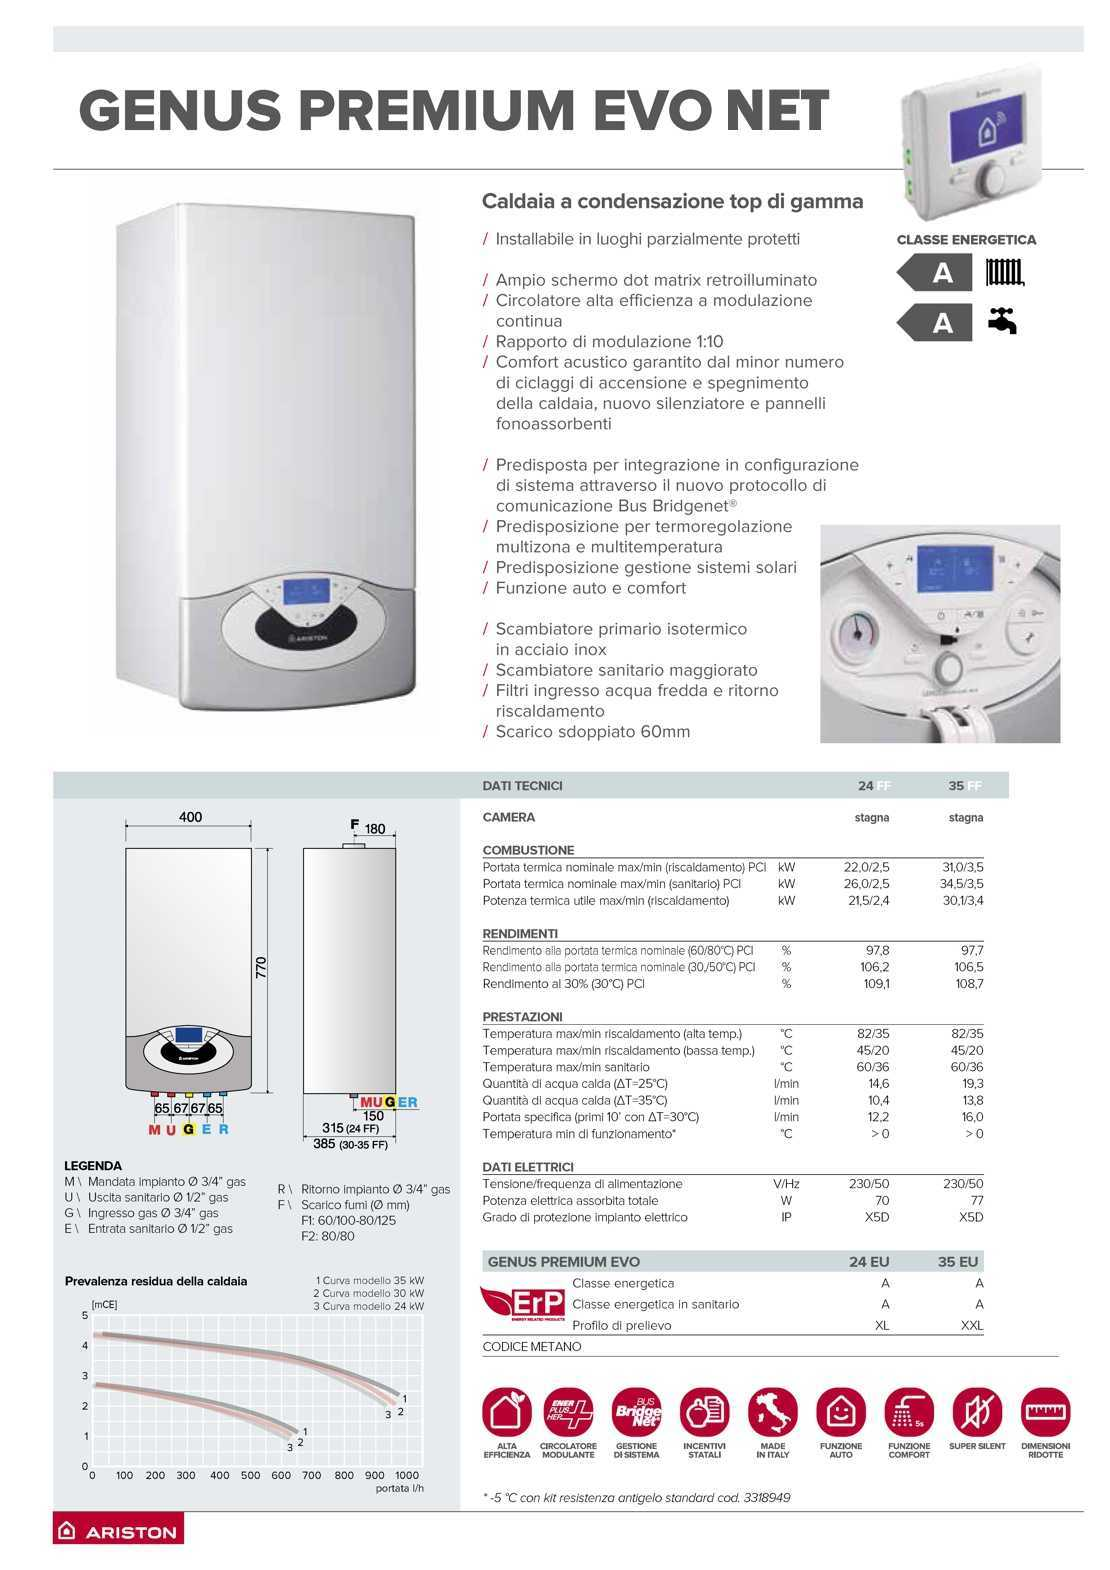 Caldaia Ariston Genius Premium Evo NET erp